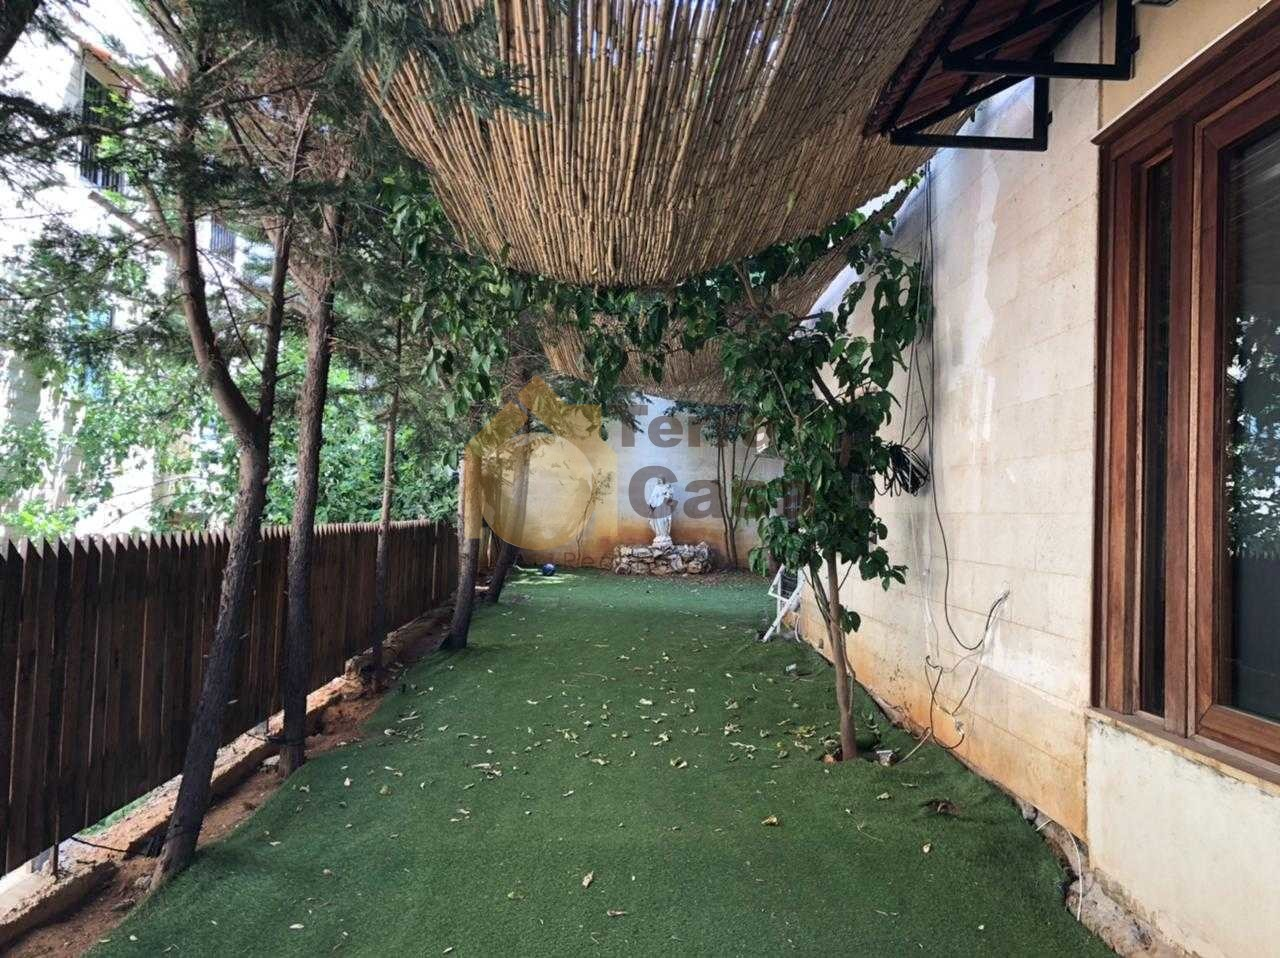 Fully furnished apartment garden 180 sqm cash payment.